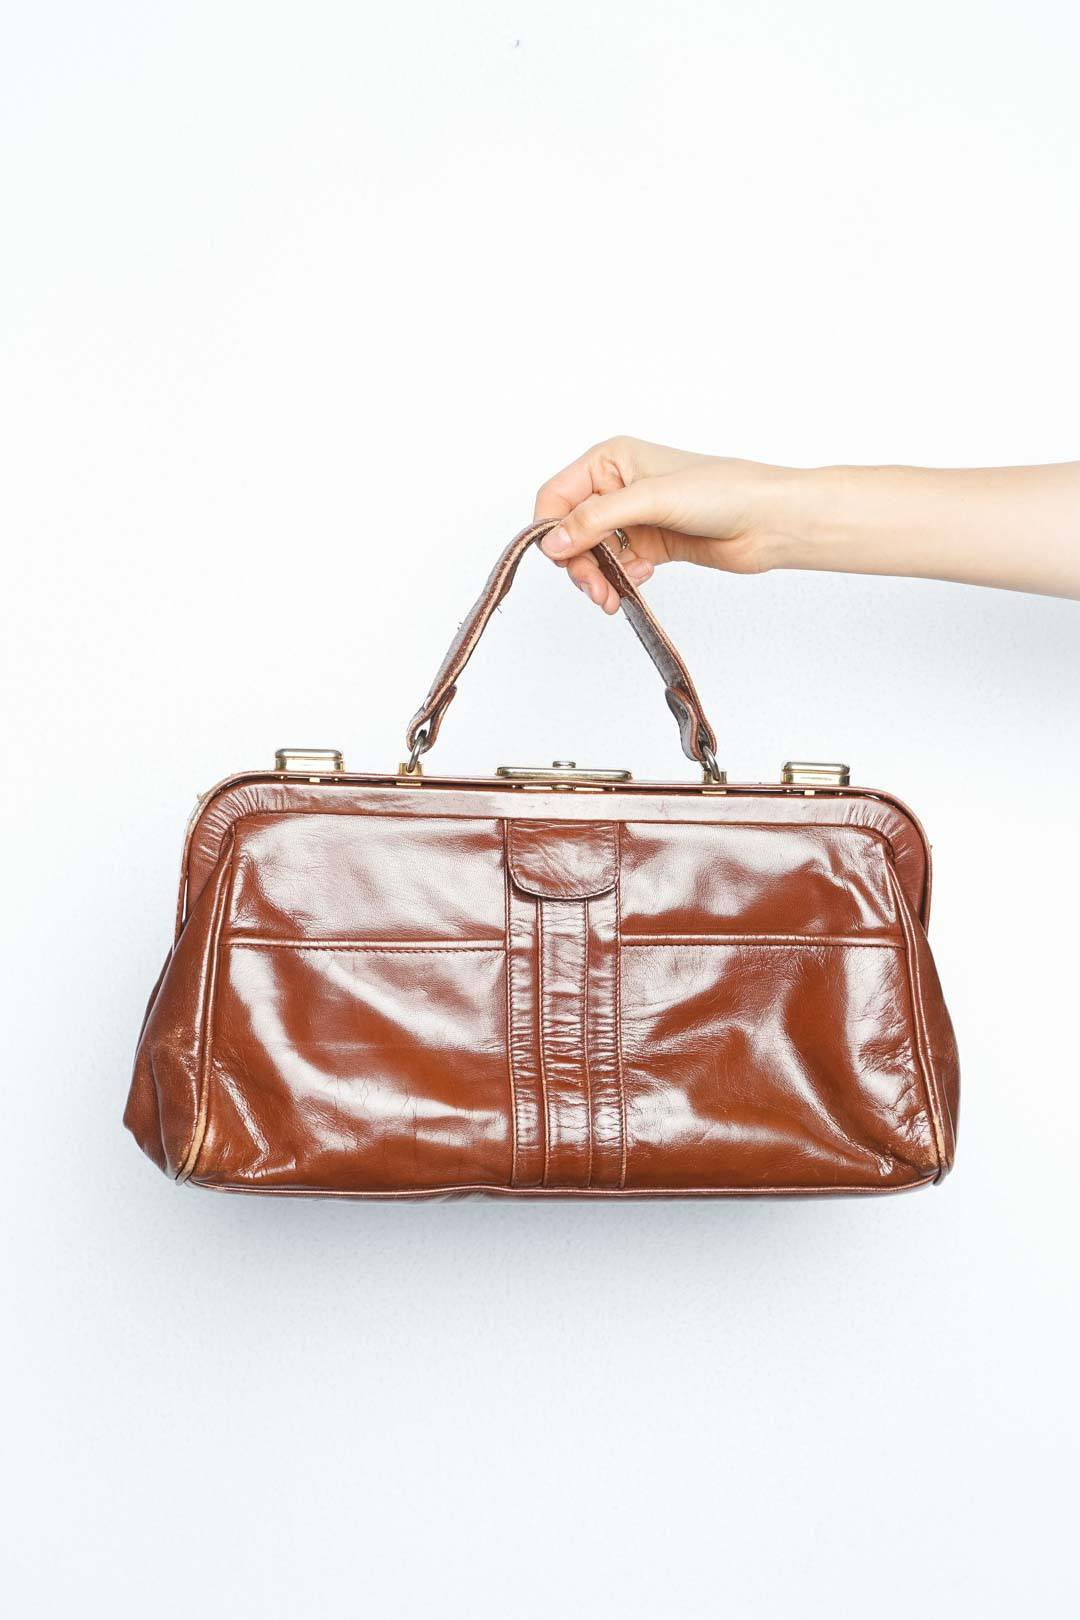 Brown Leather Bag - VinoKilo.com